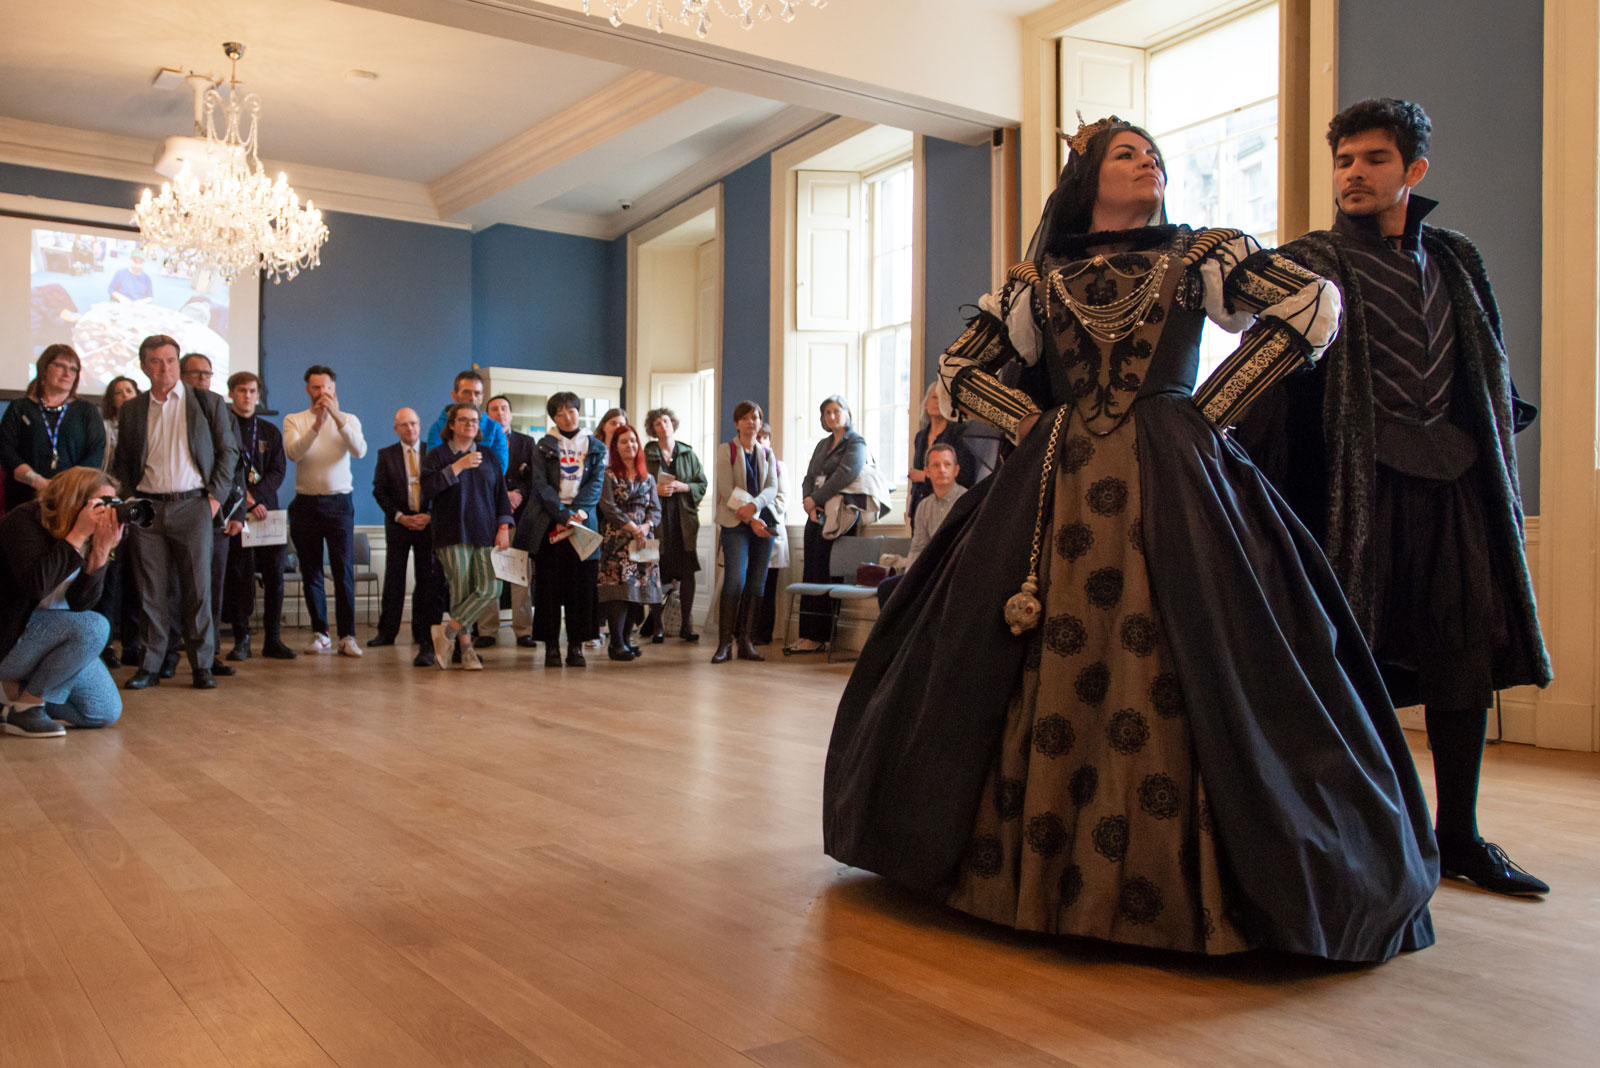 Two dance students perform a historic routine in the library of Riddle's Court